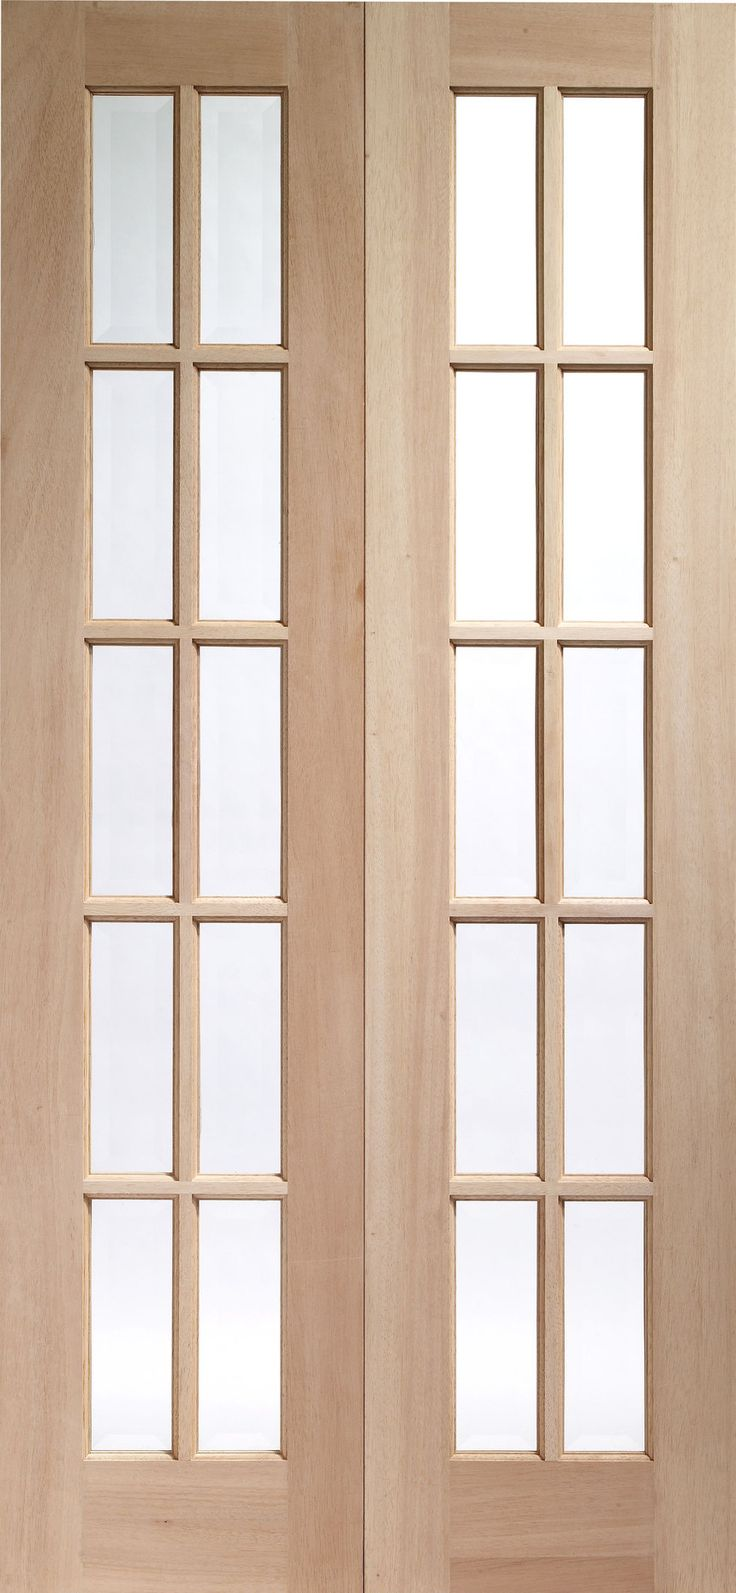 Narrow french door photos french doors hardwood for Narrow exterior french doors